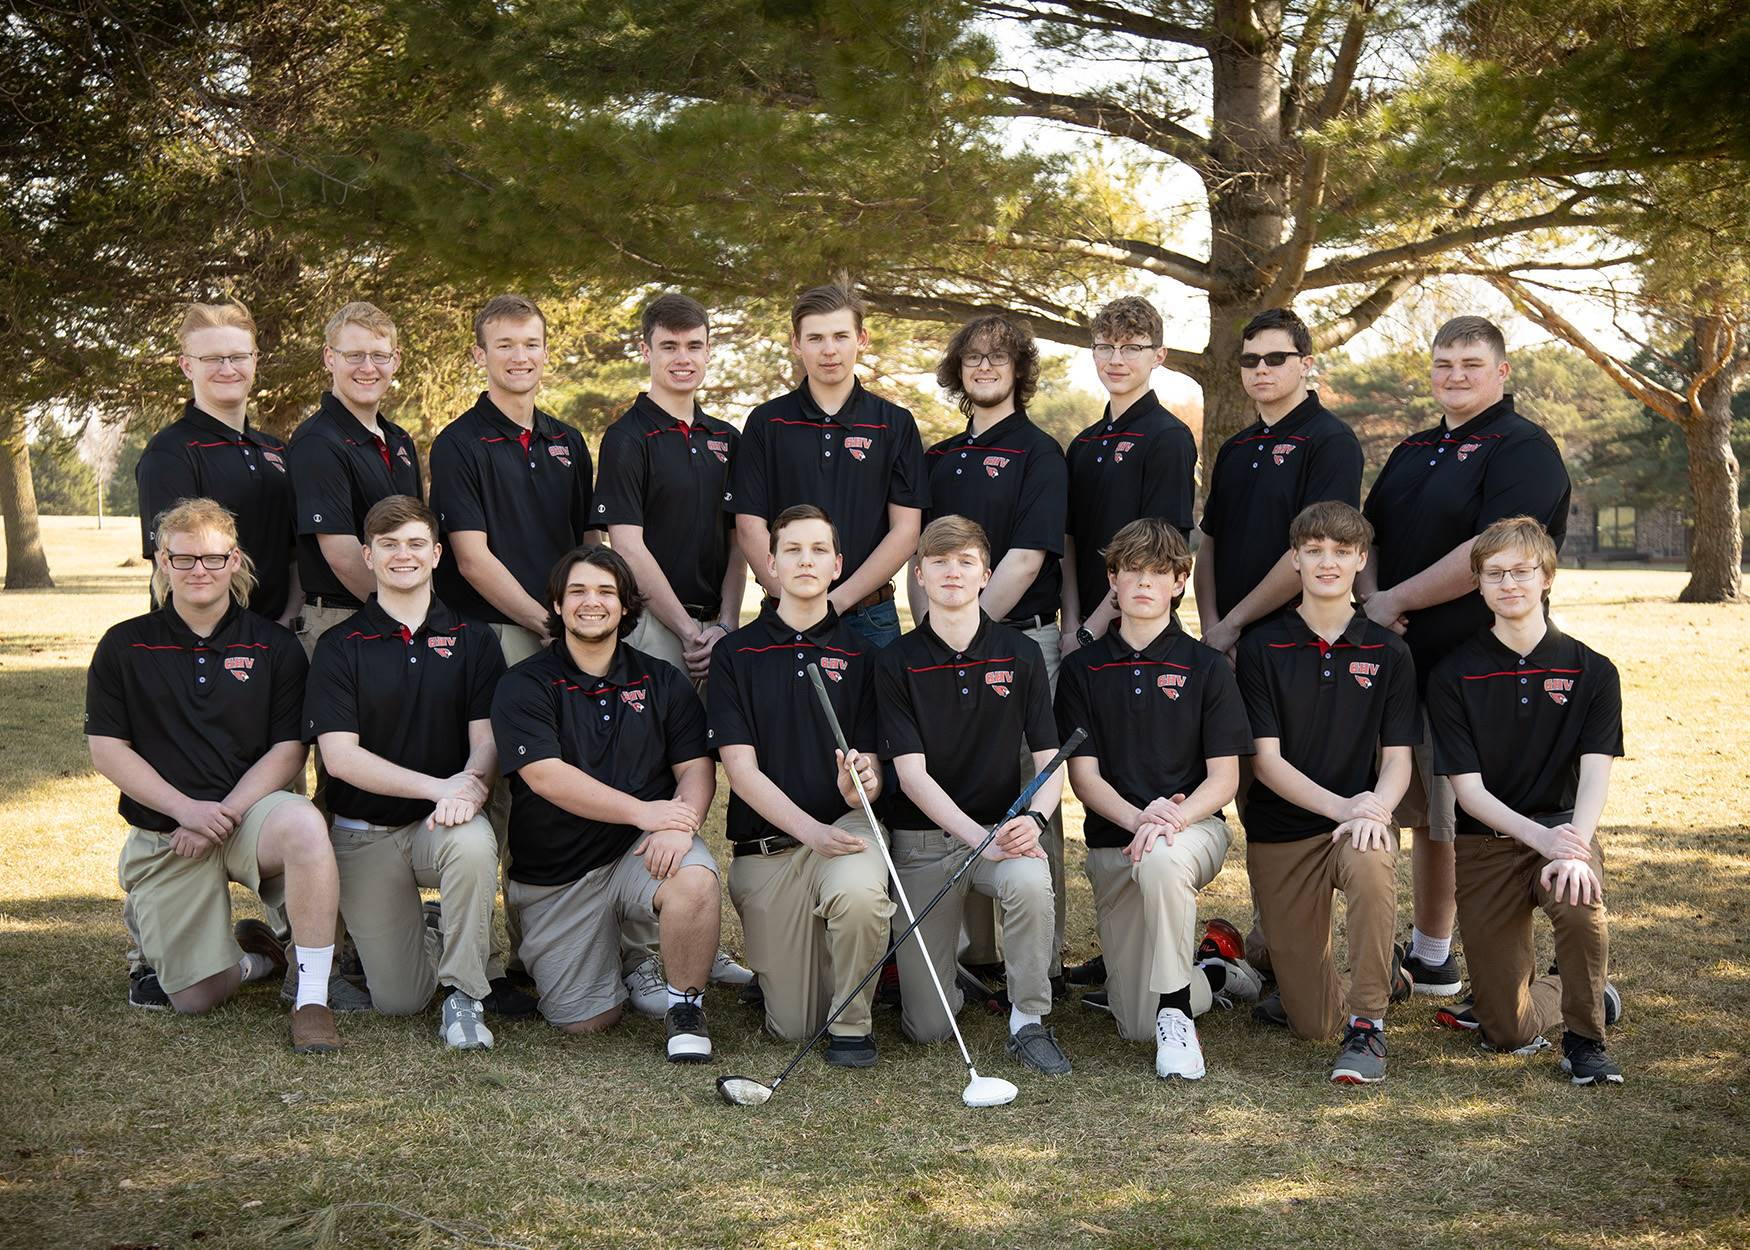 Boys golf team posing for a photo